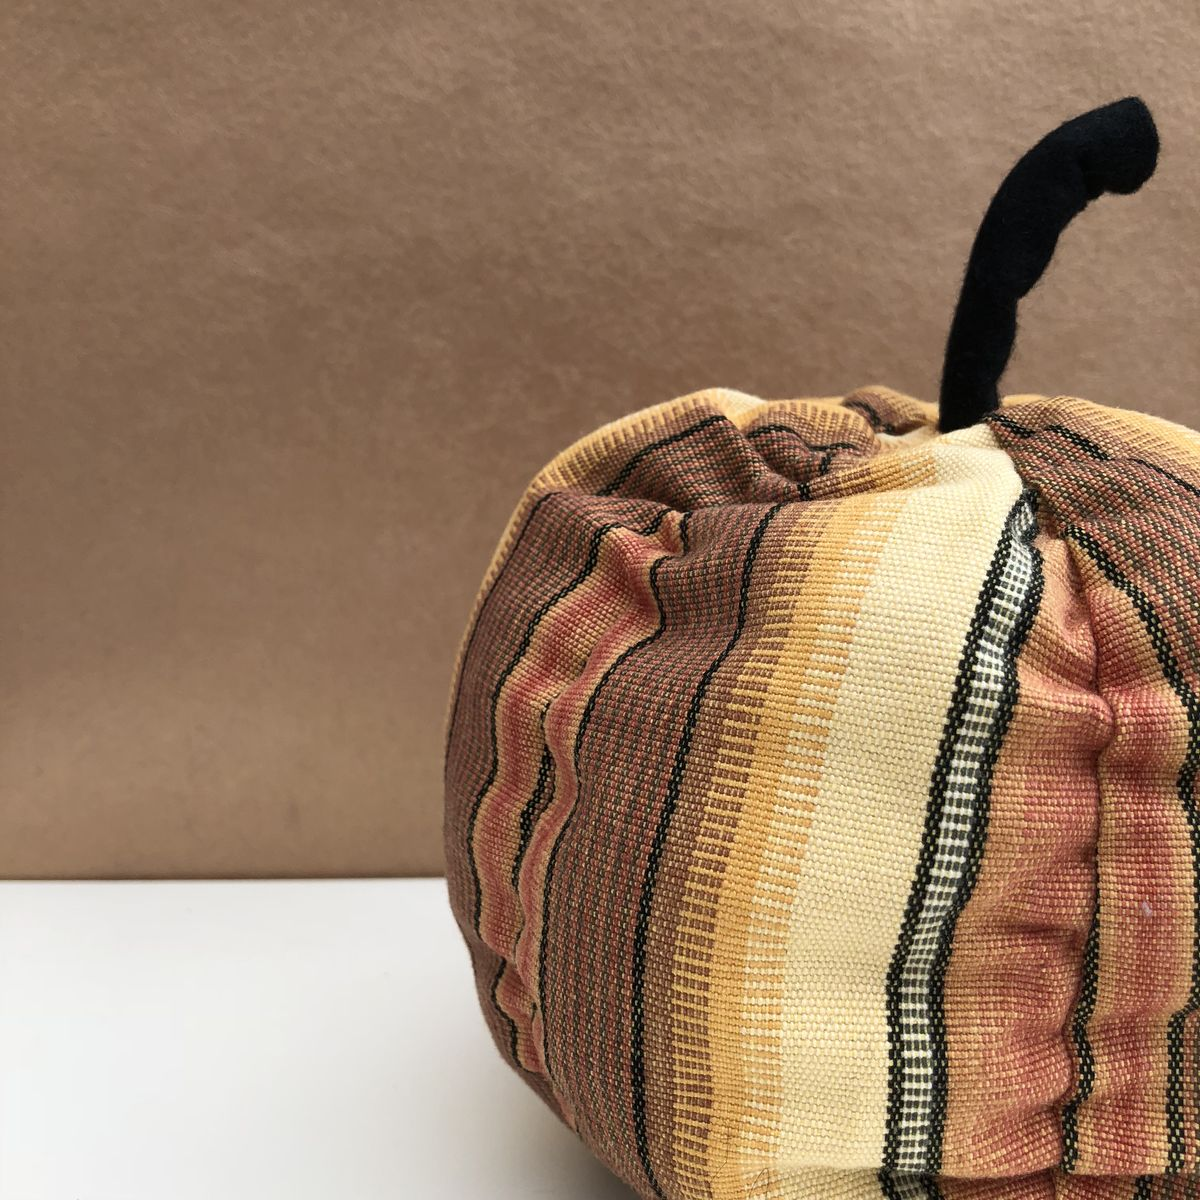 Decorative patterned pumpkin - autumn stripes - product images  of